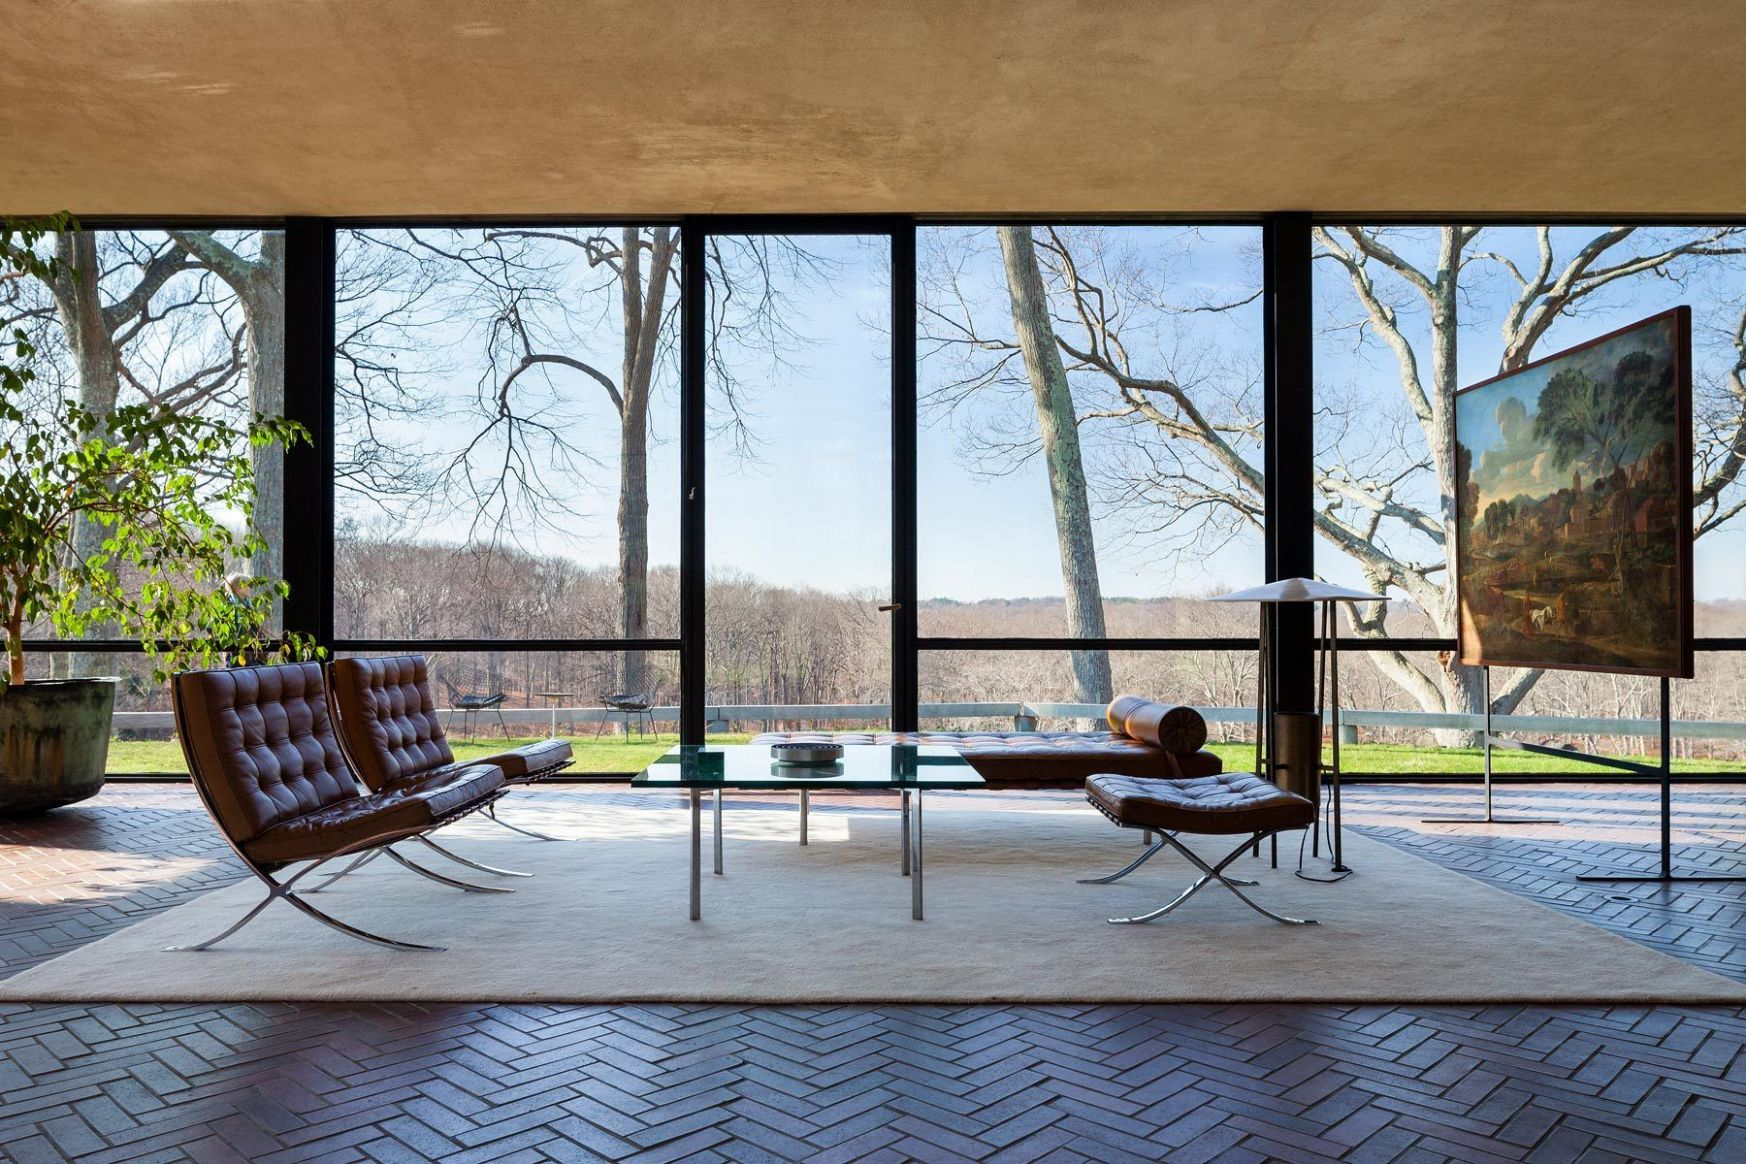 glass house 11 (With images) | Philip johnson glass house, Glass ..